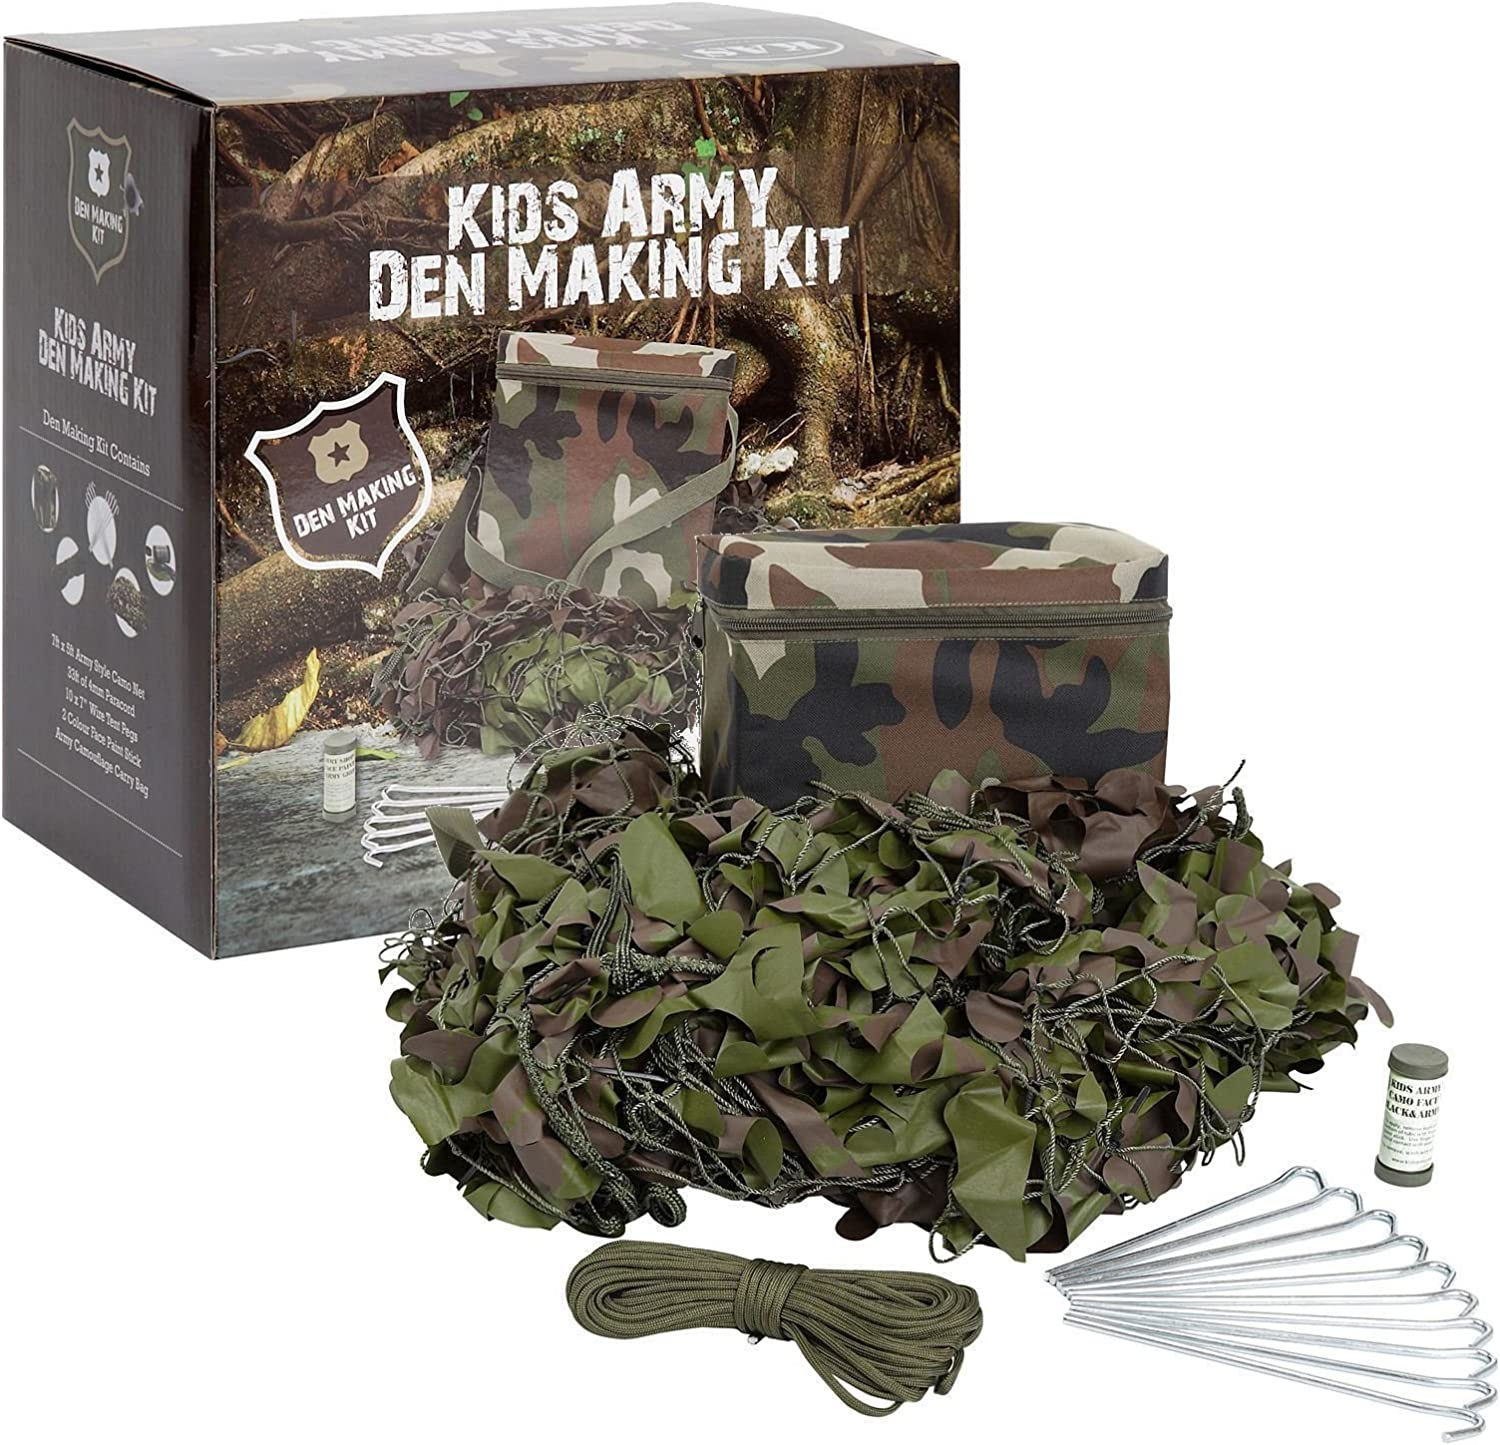 Kids Army Complete Den Making Kit with Camo Net